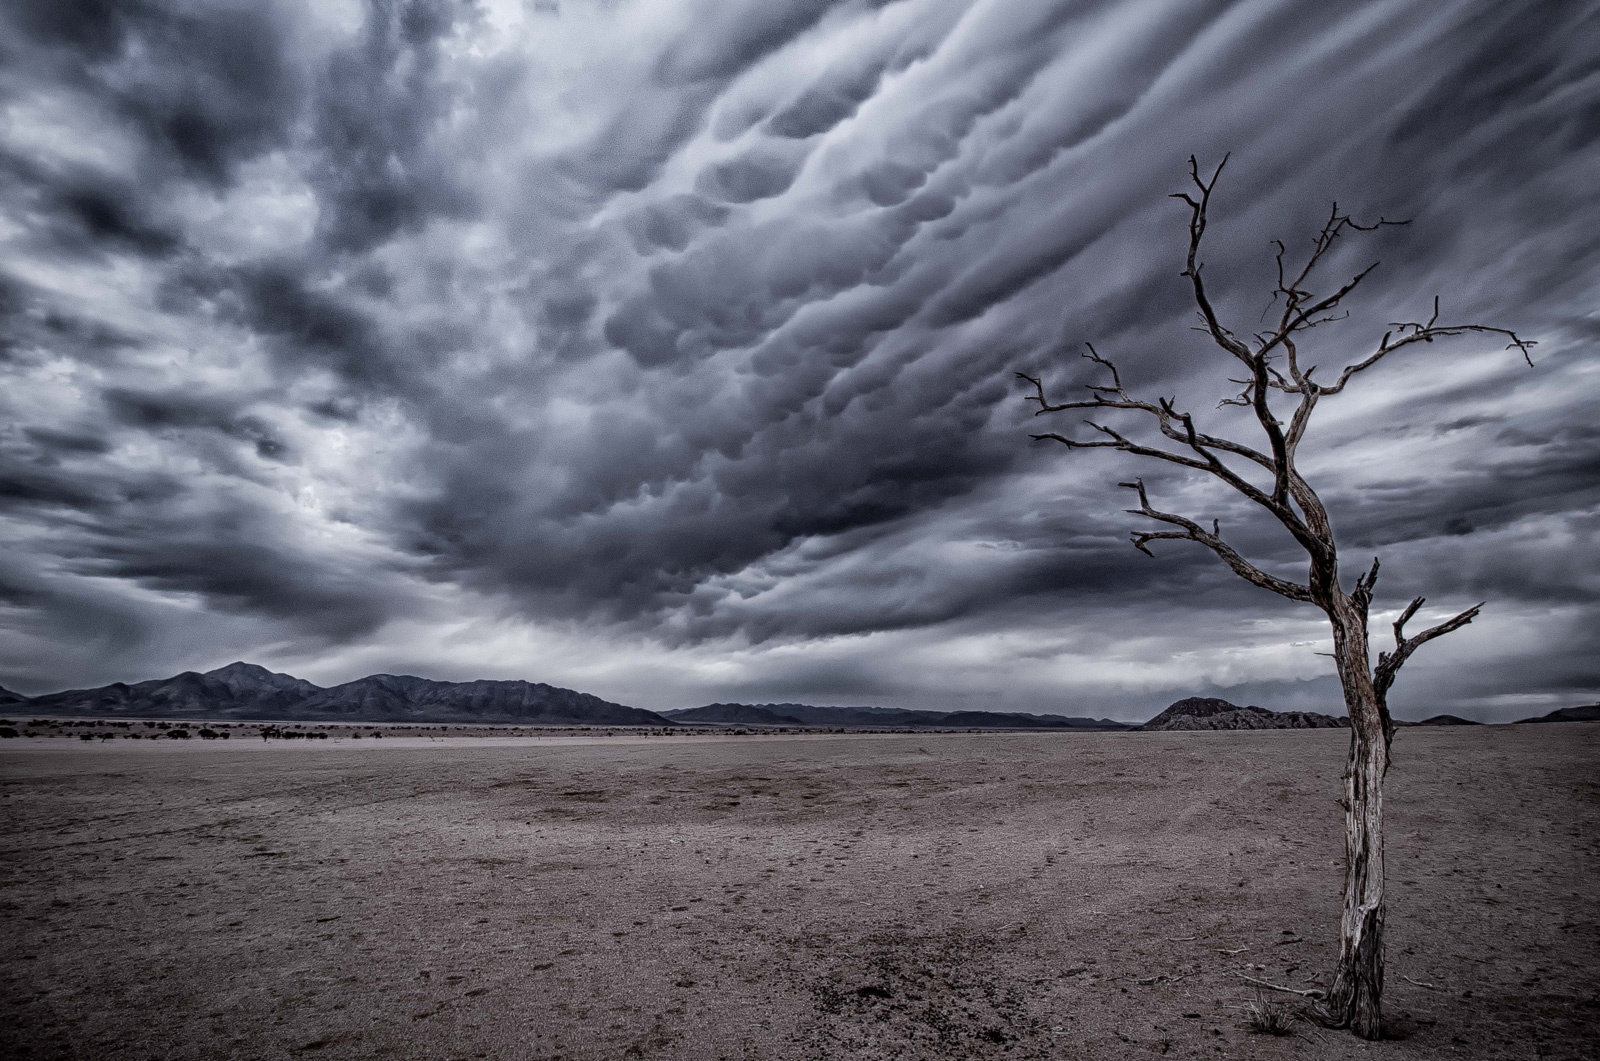 Dramatic cloud formations over the Namib Desert ©Ettienne Rossouw